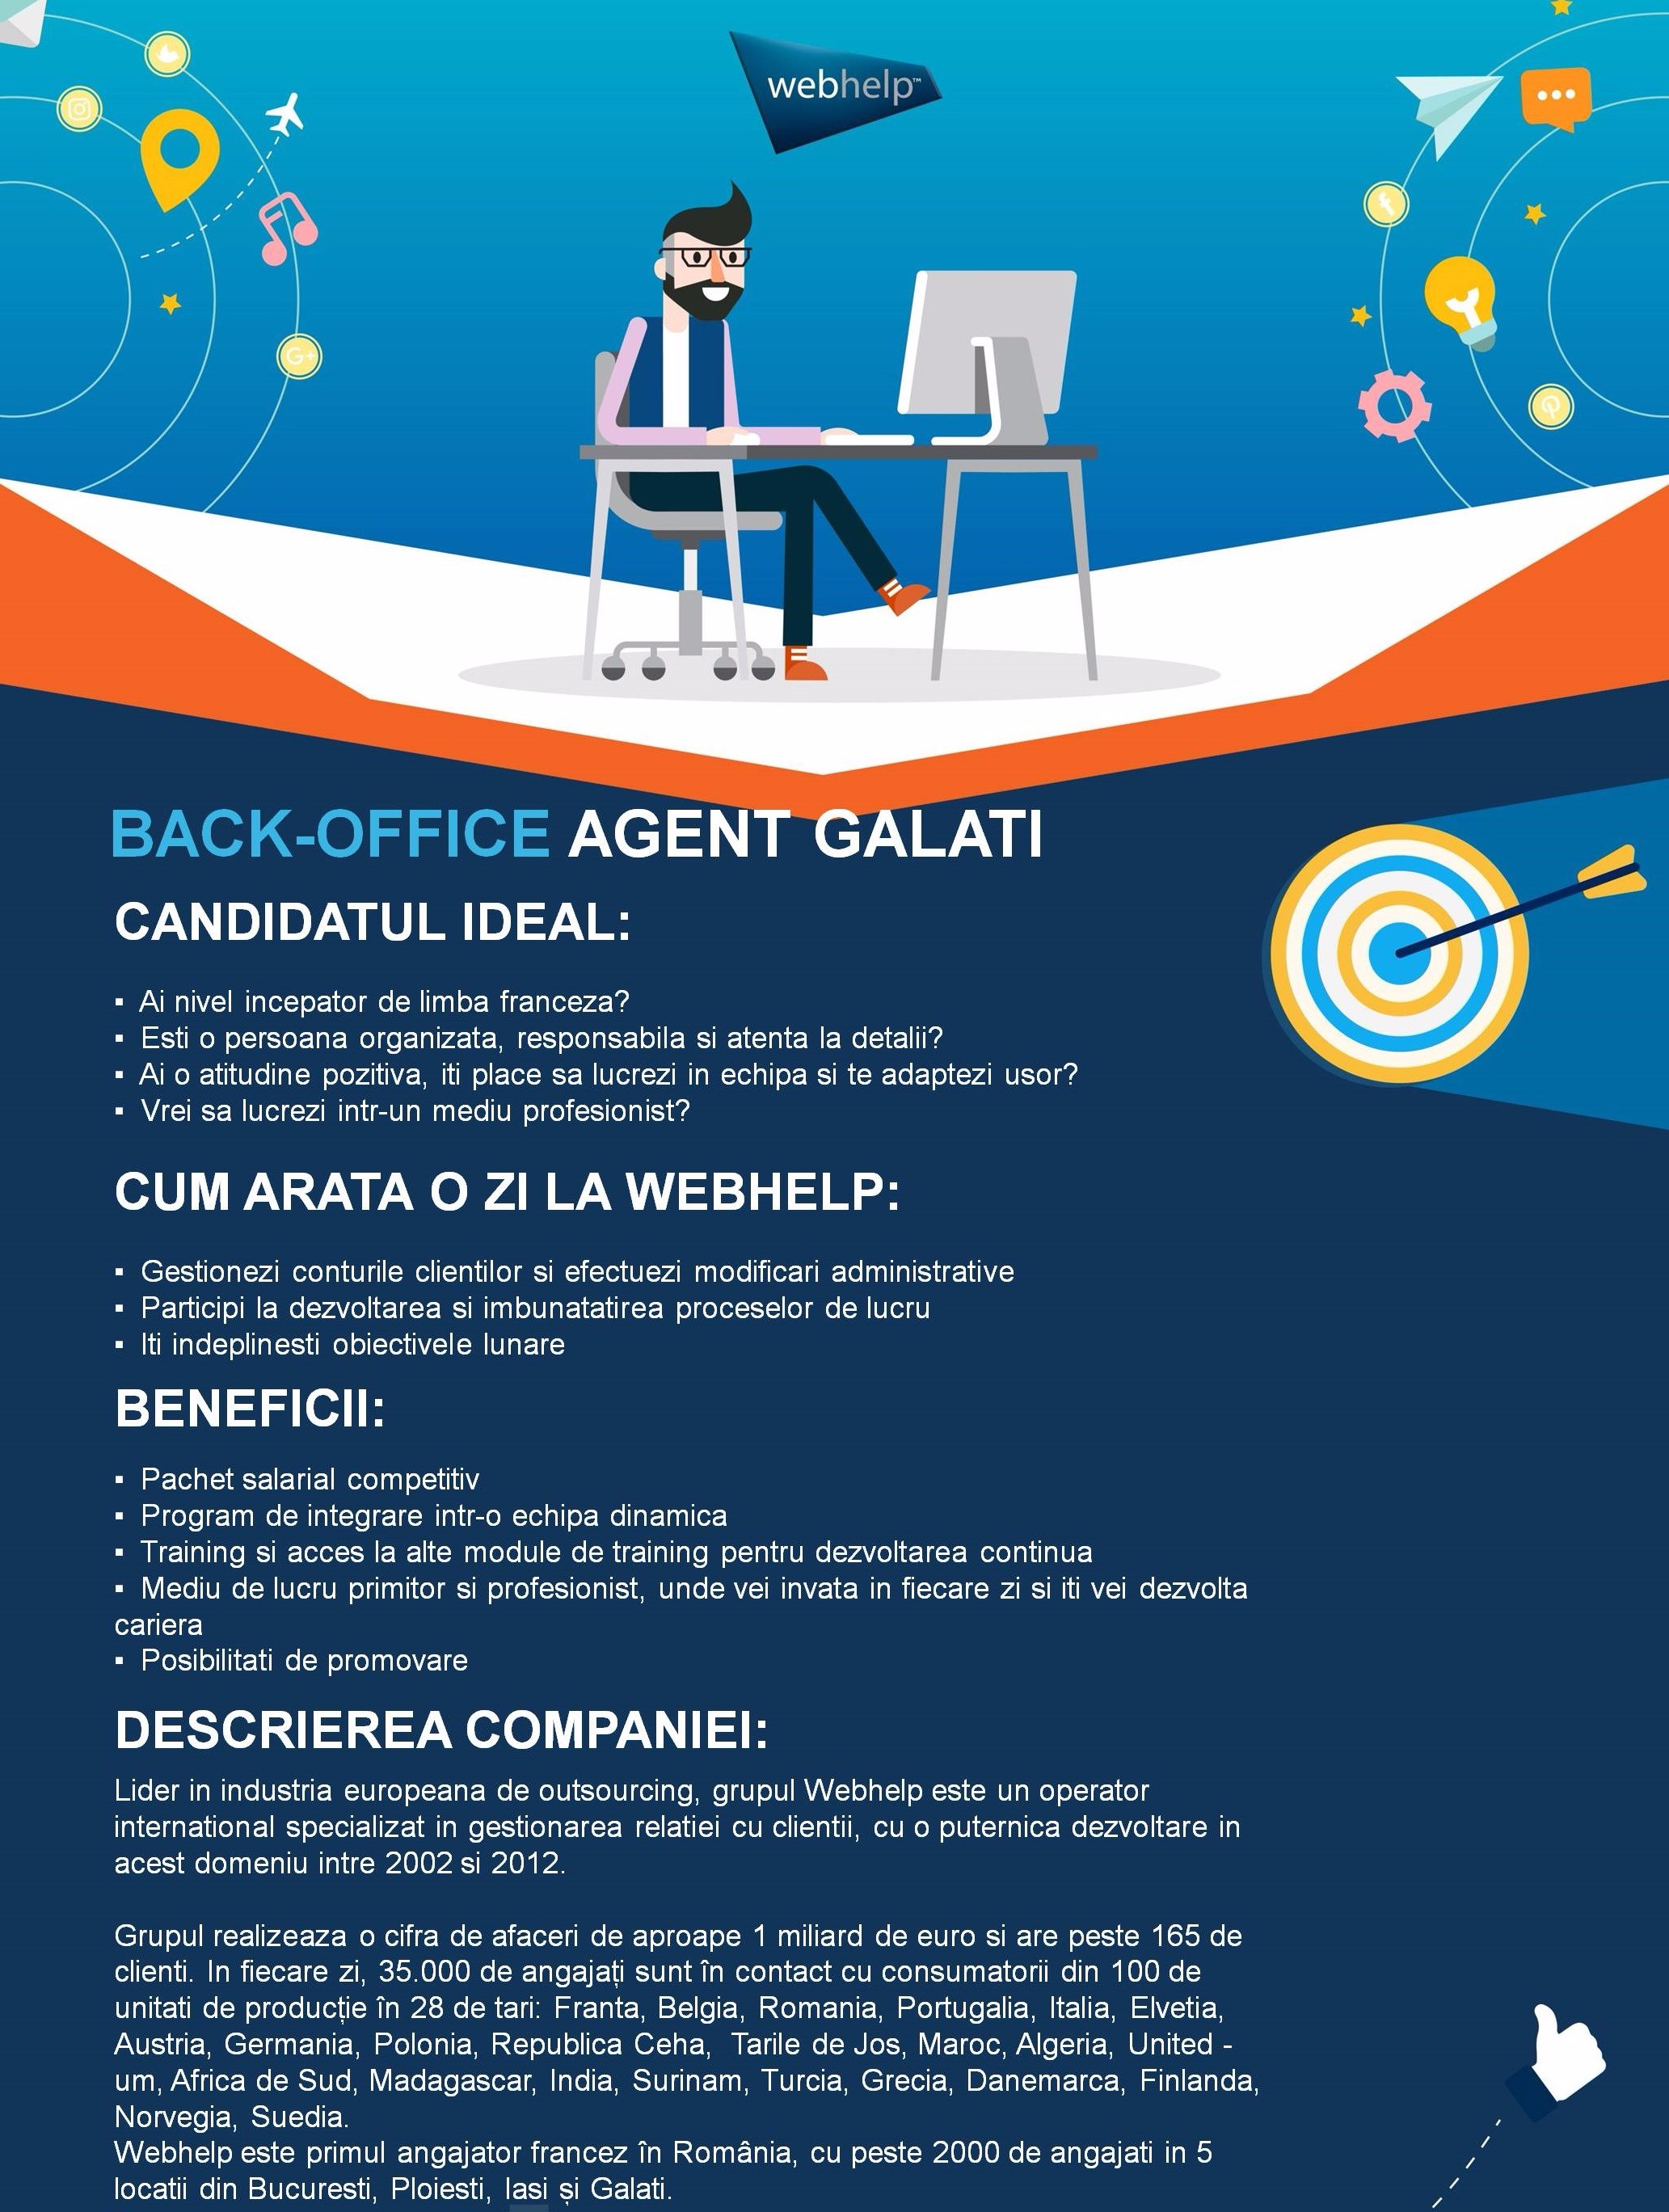 BACKOFFICE AGENT GALATI